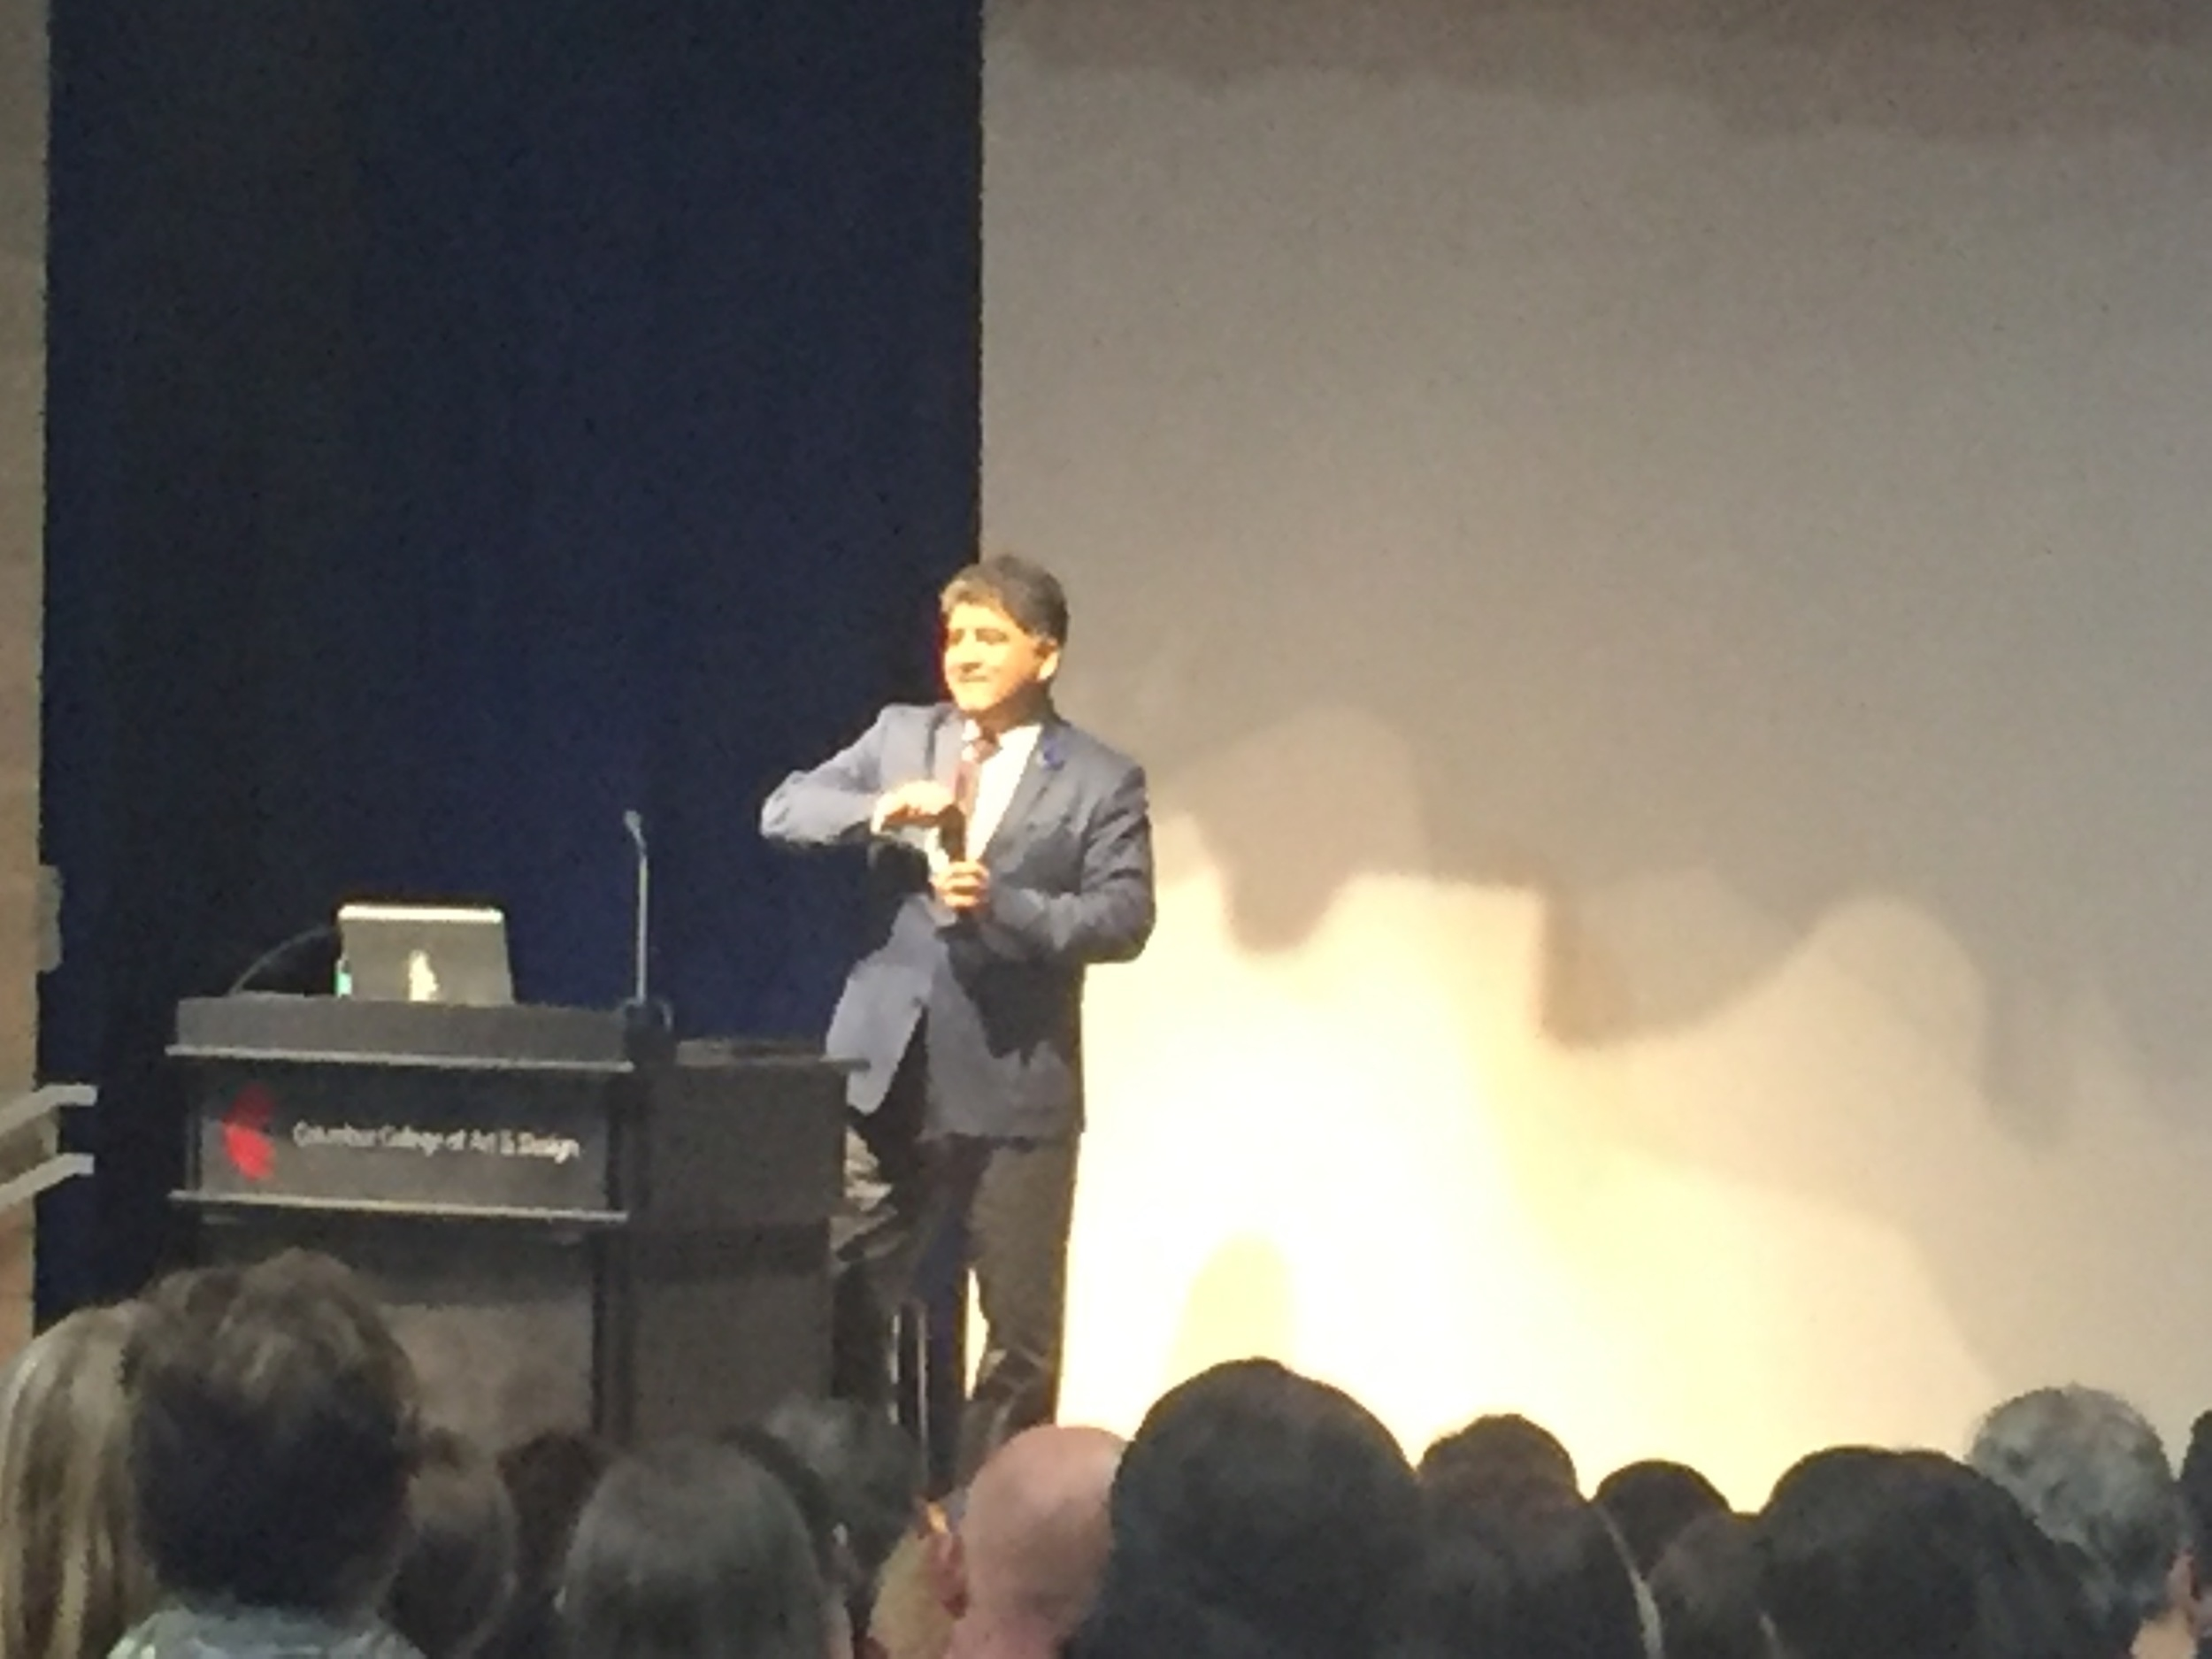 Forgive the shitty photography; I was in the back of the room. But that's Sherman Alexie!